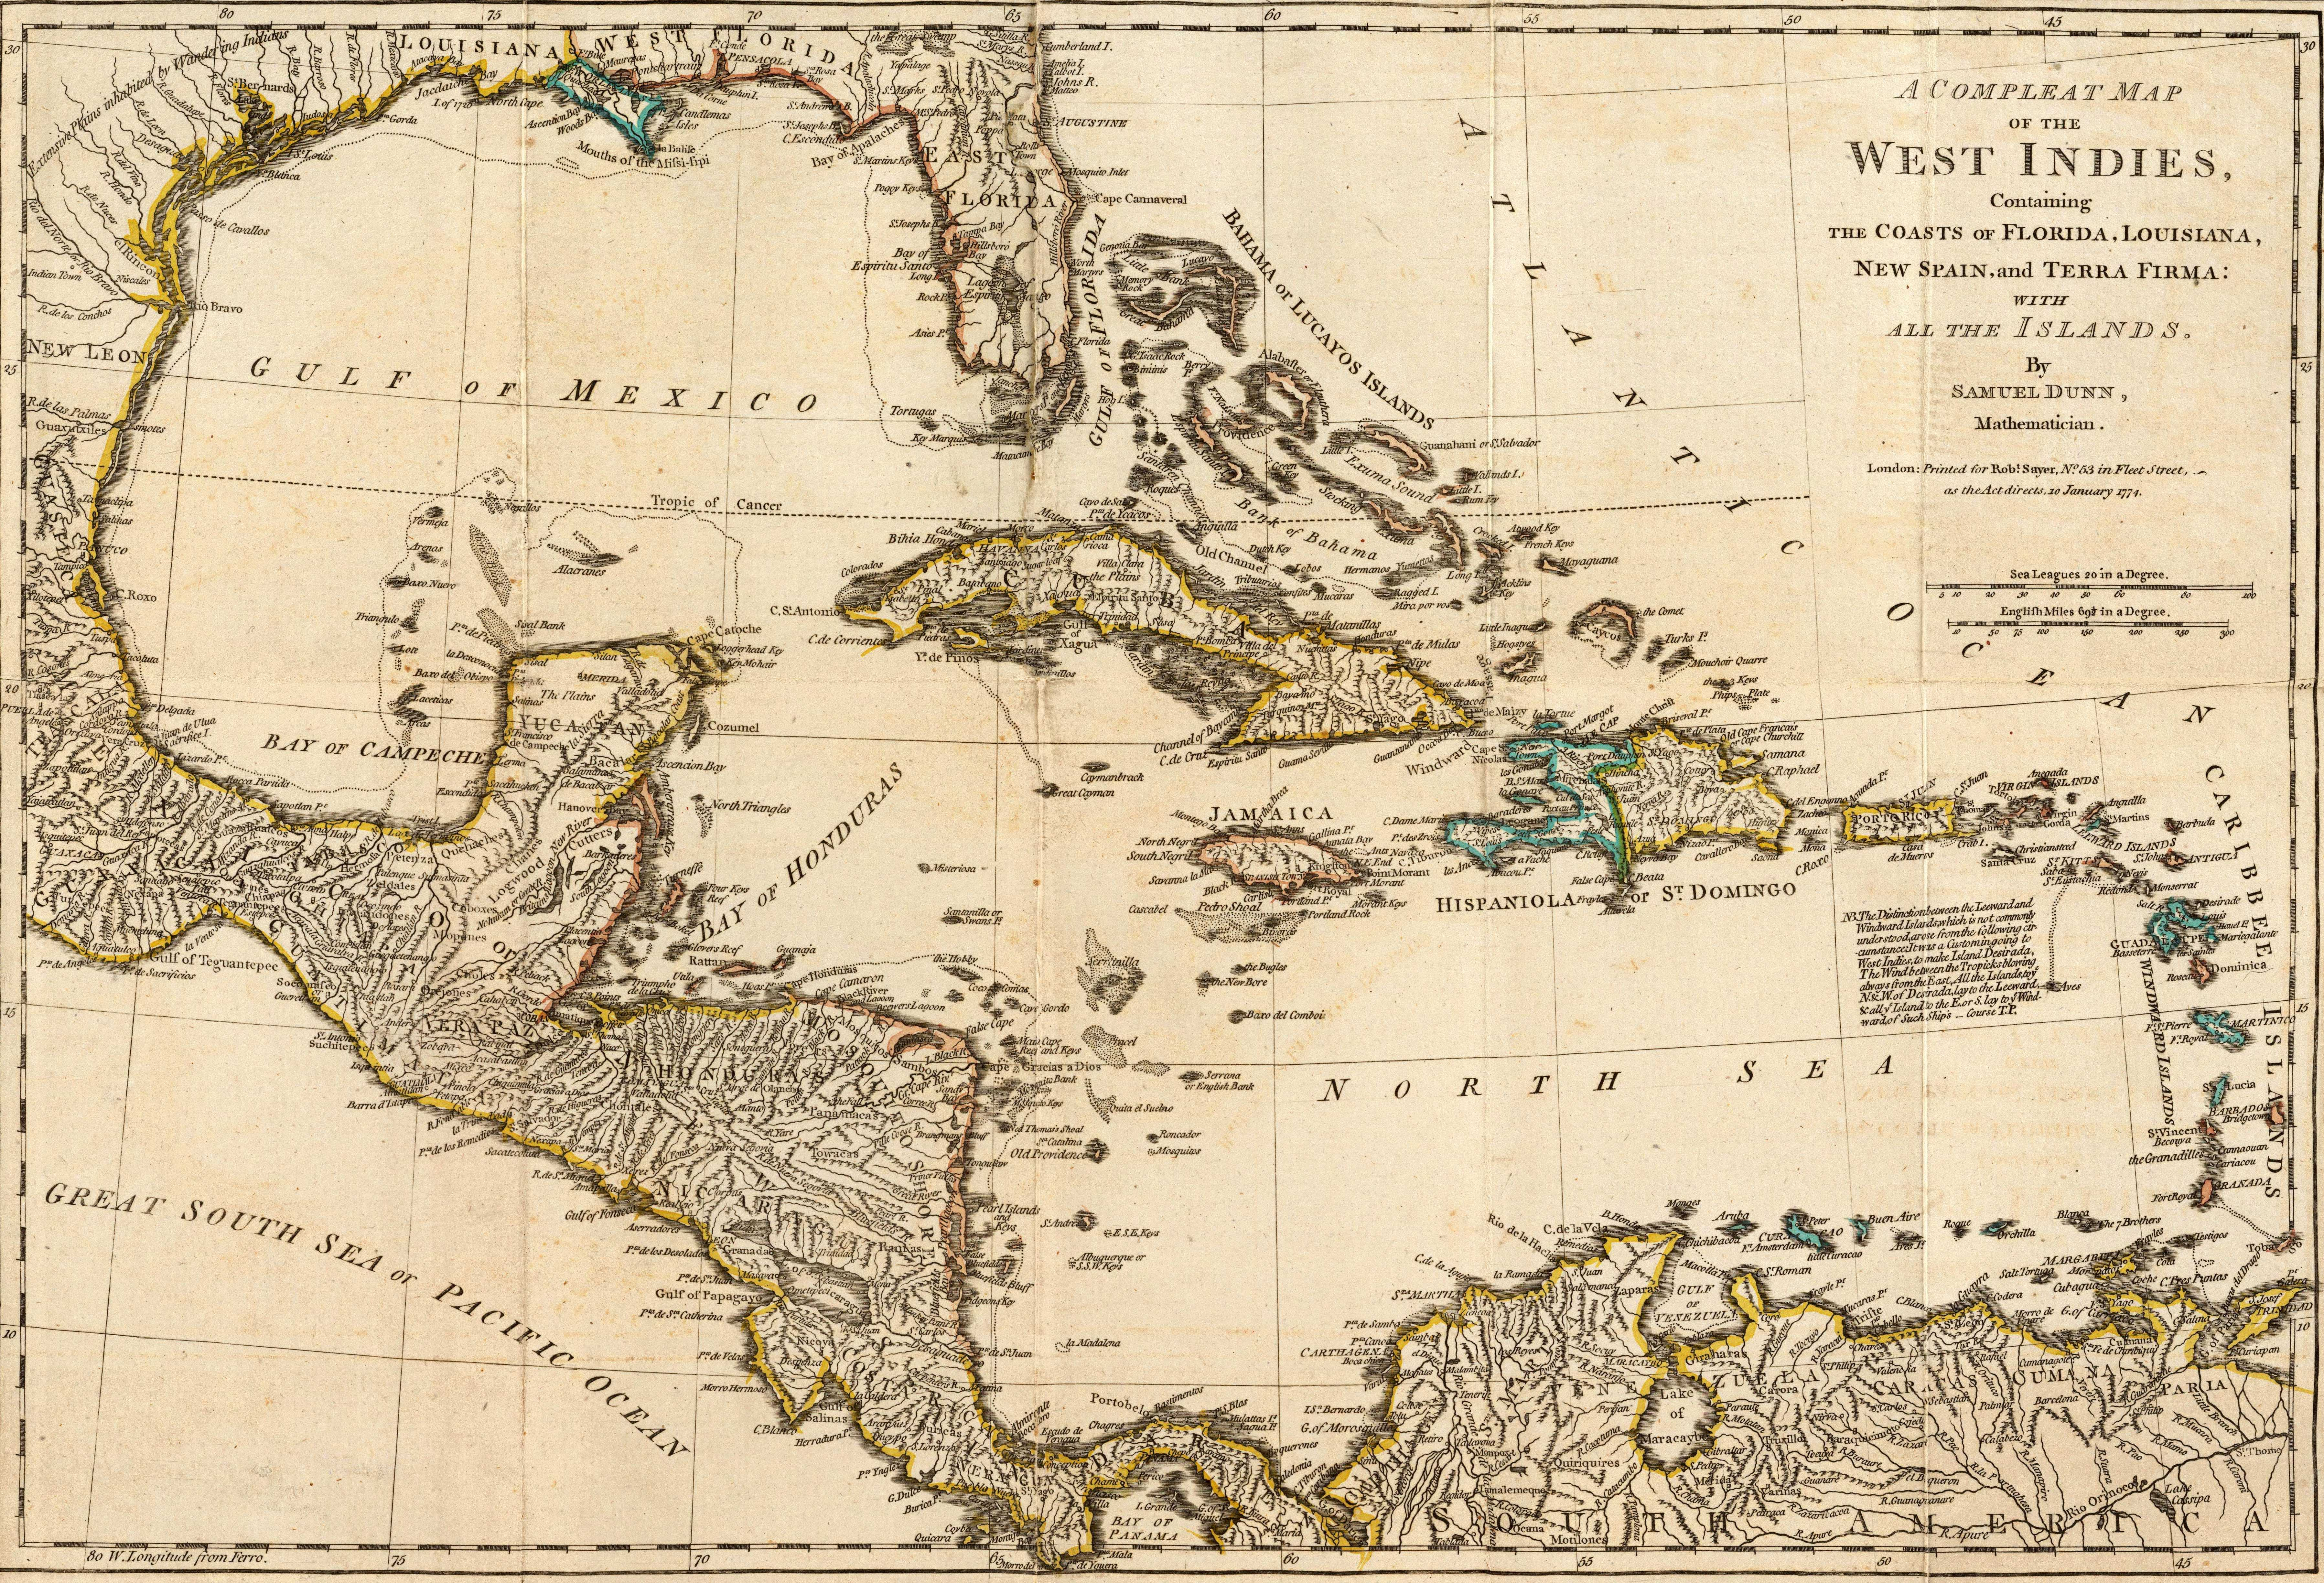 the caribbean culture The african culture is deeply embedded in the modern history of the caribbean and began with the adoption of an economy based on sugar cane production and modeled after the system implemented by the portuguese in brazil, known as the plantation system.